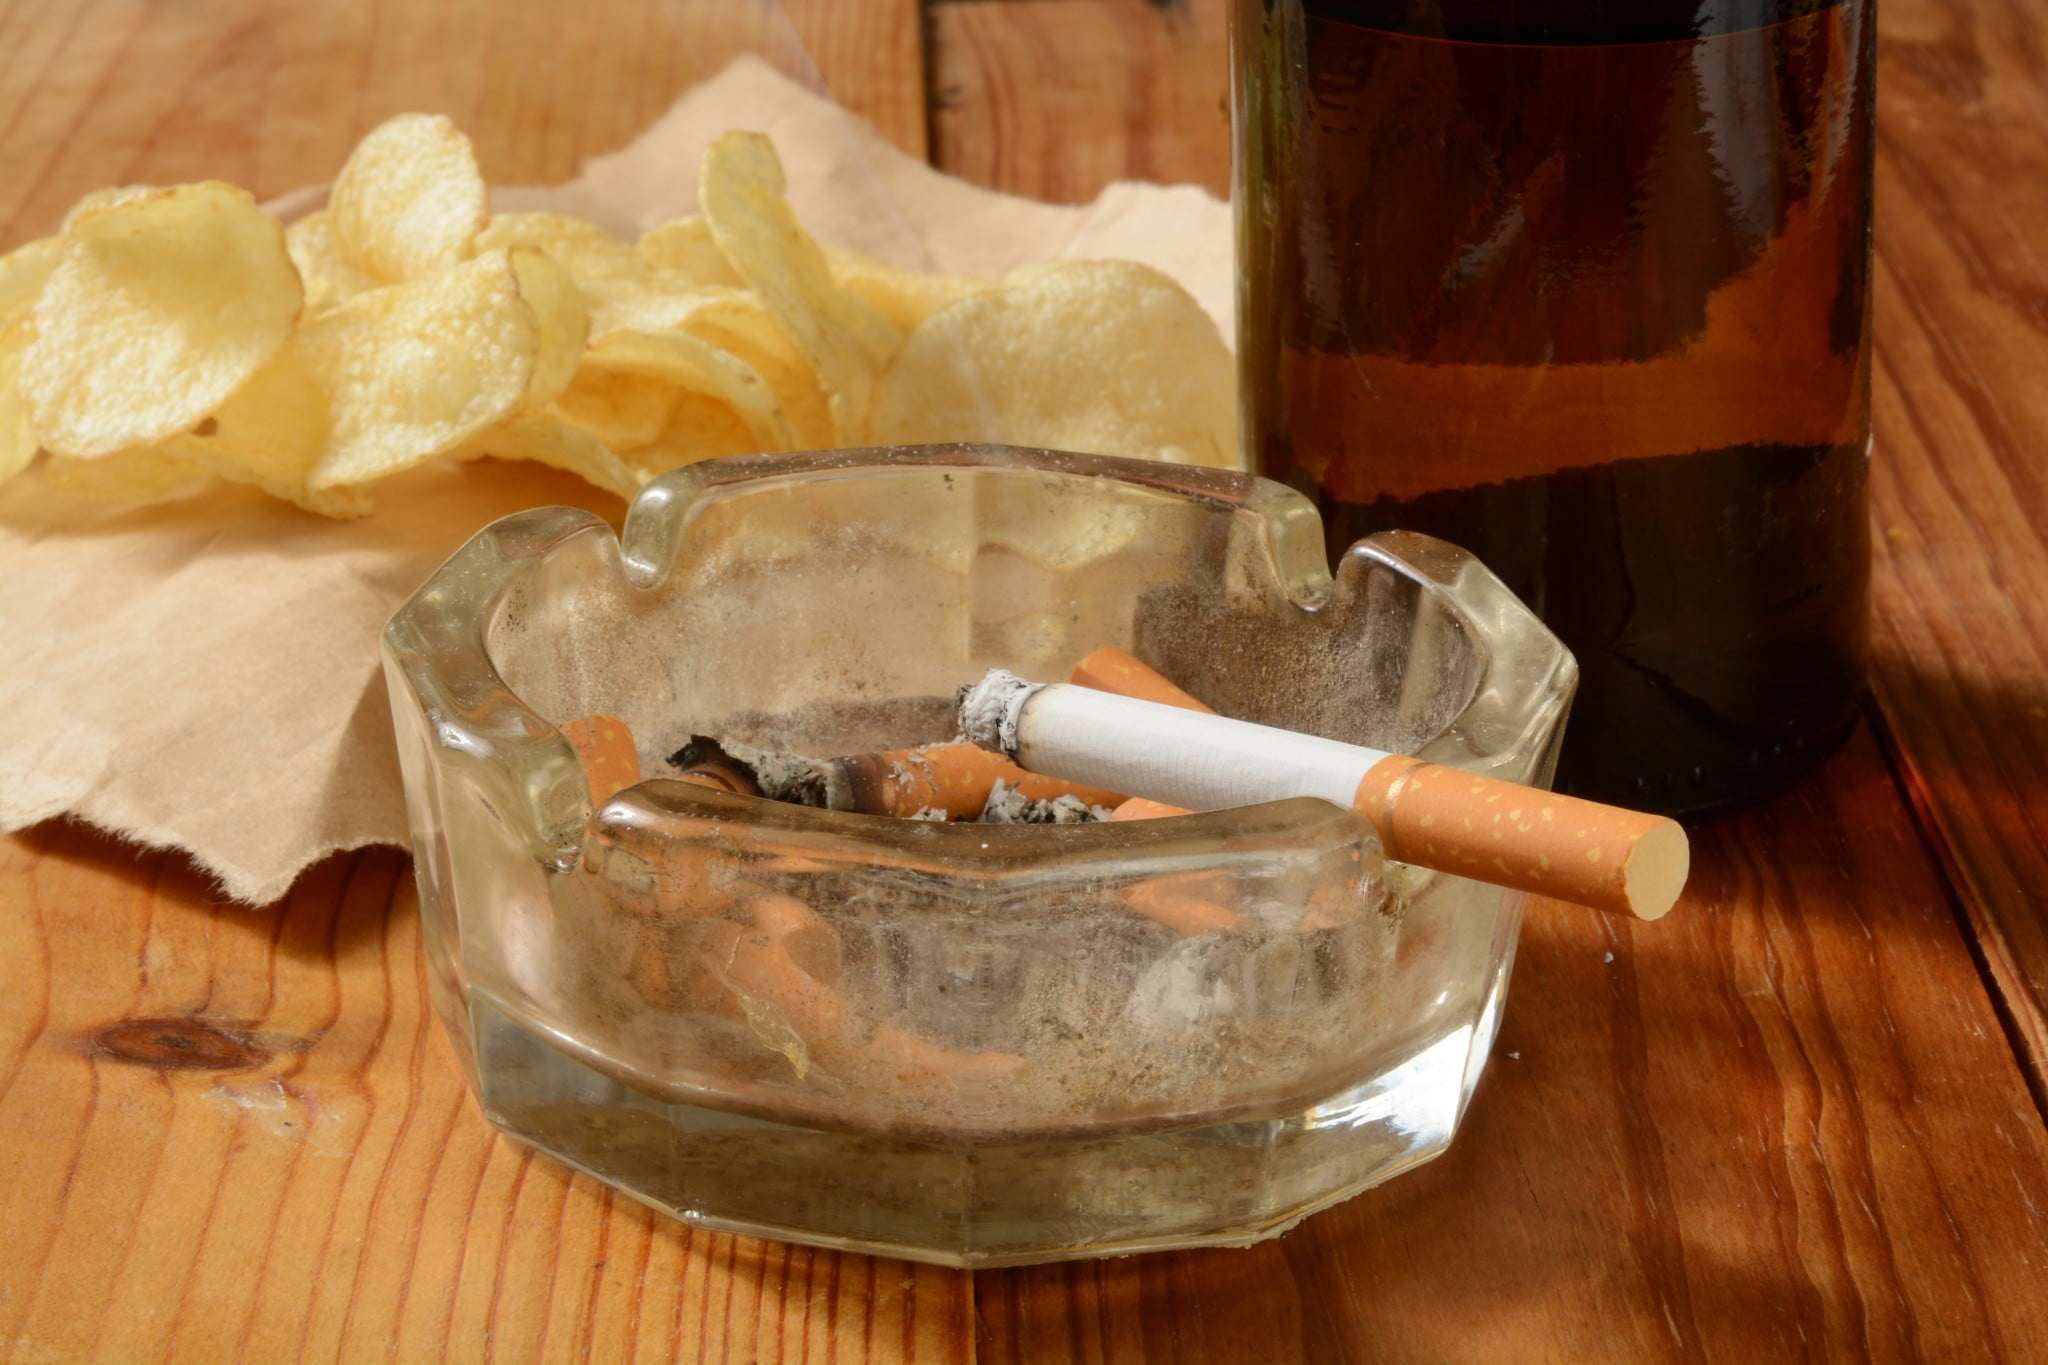 bad habits: cigarette smouldering in ashtray in front of crisps and beer